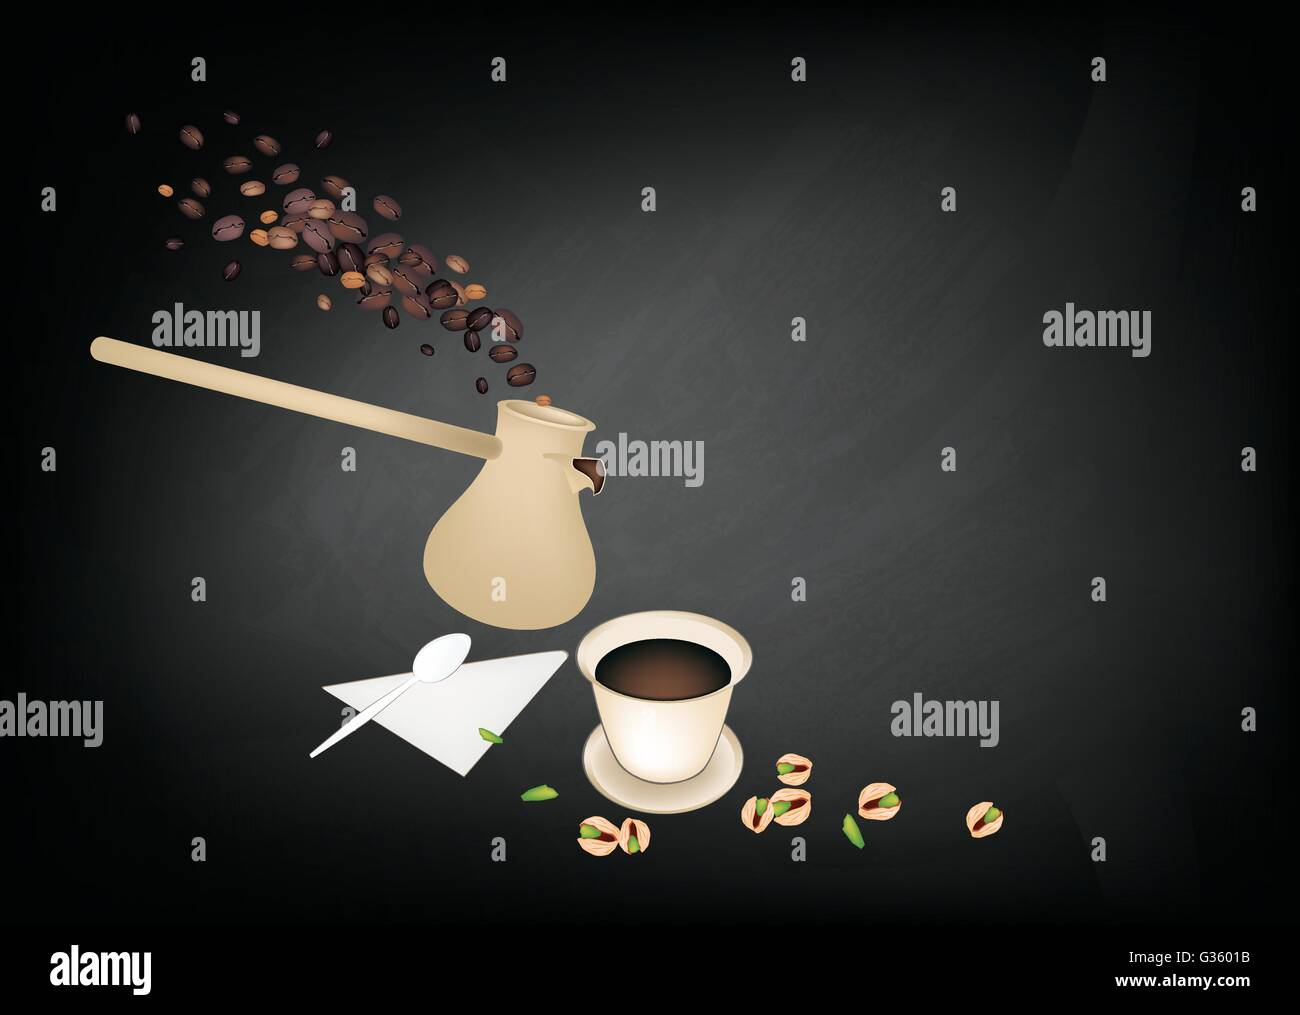 Turkish Cuisine, Turkish Coffee with Cezve or Turkish Coffee Pot on Chalkboard. One of The Popular Drink in Turkey. - Stock Vector